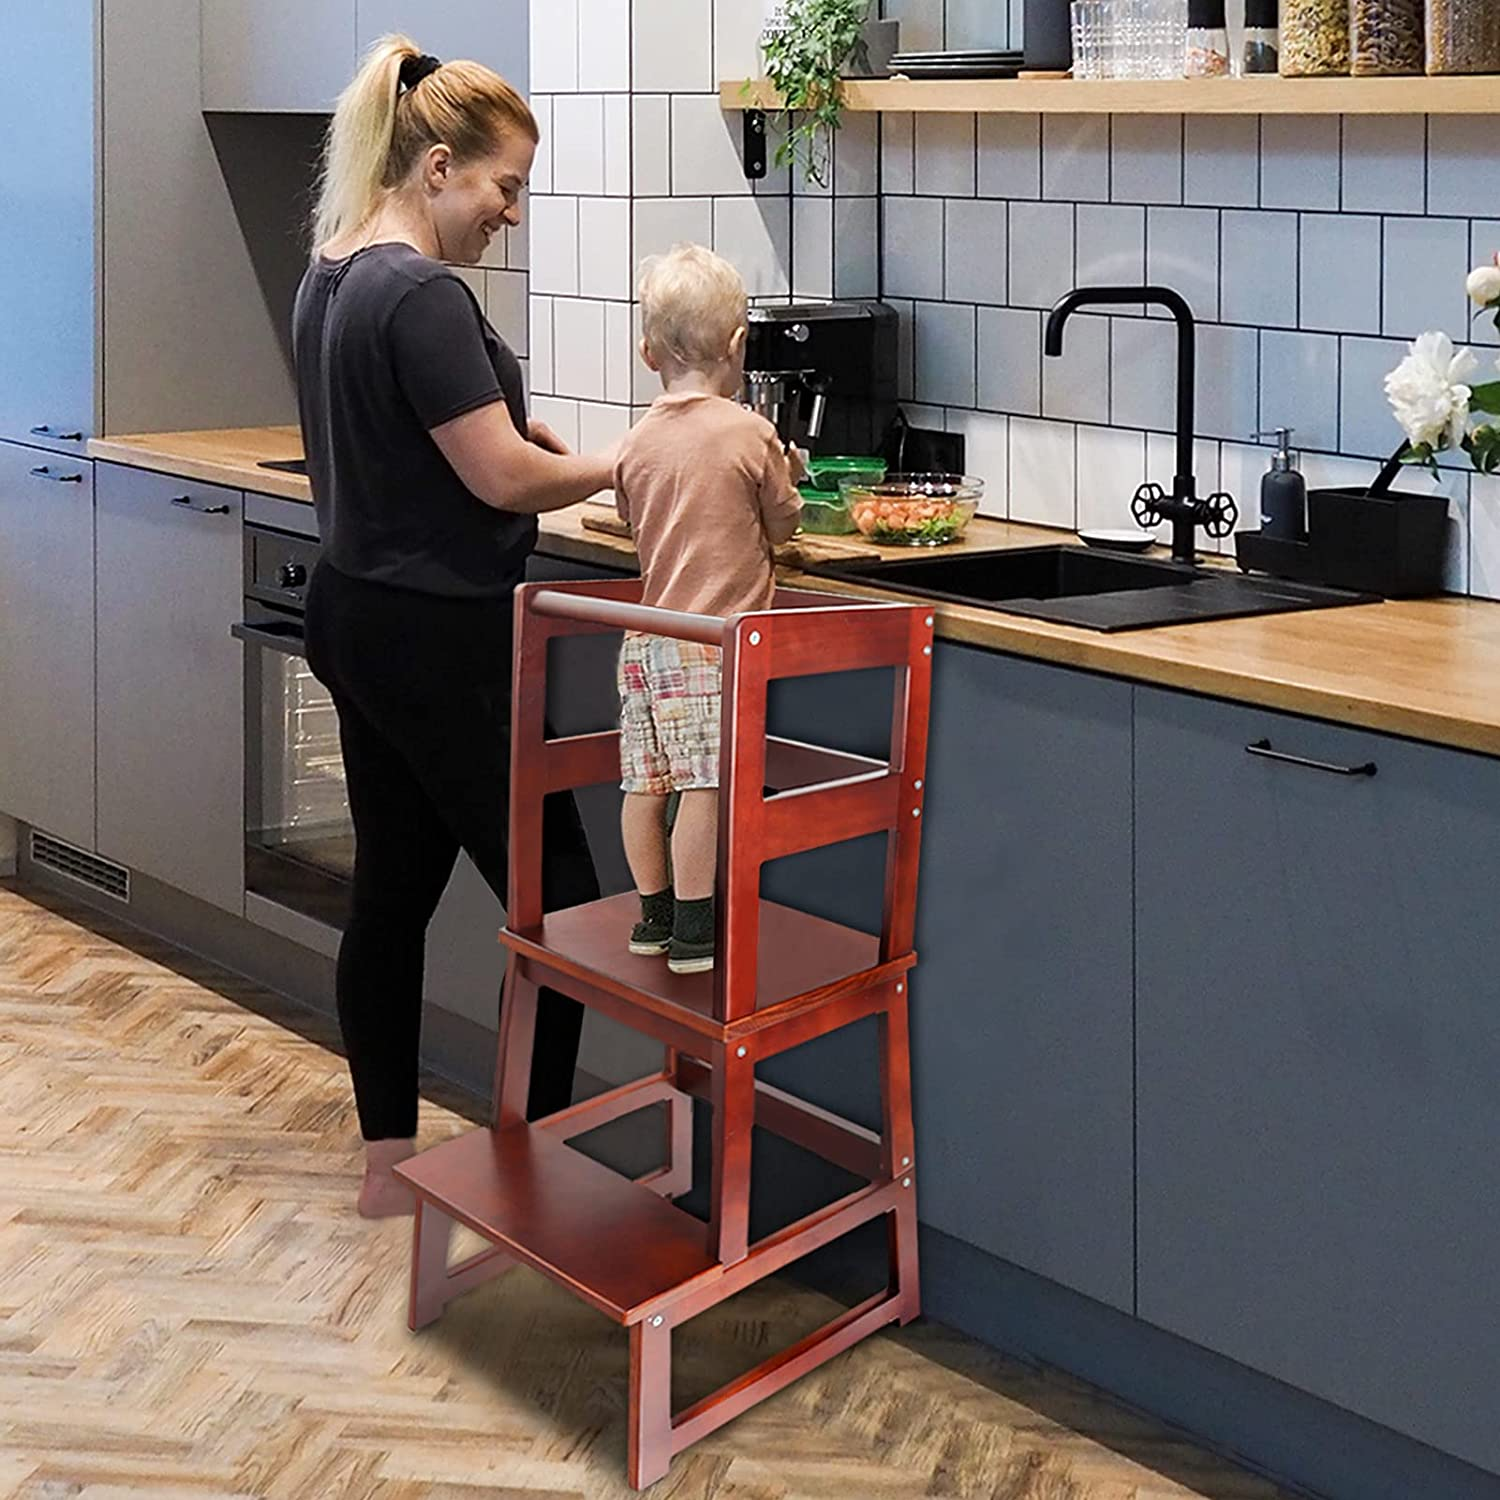 WishaLife Kids Kitchen Step Stool with Safety Rail, Toddler Kitchen Stool for Toddlers 18 Months and Older, Children Standing Tower, Kids Wooden Step Stool Tower for Kitchen Counter Learning